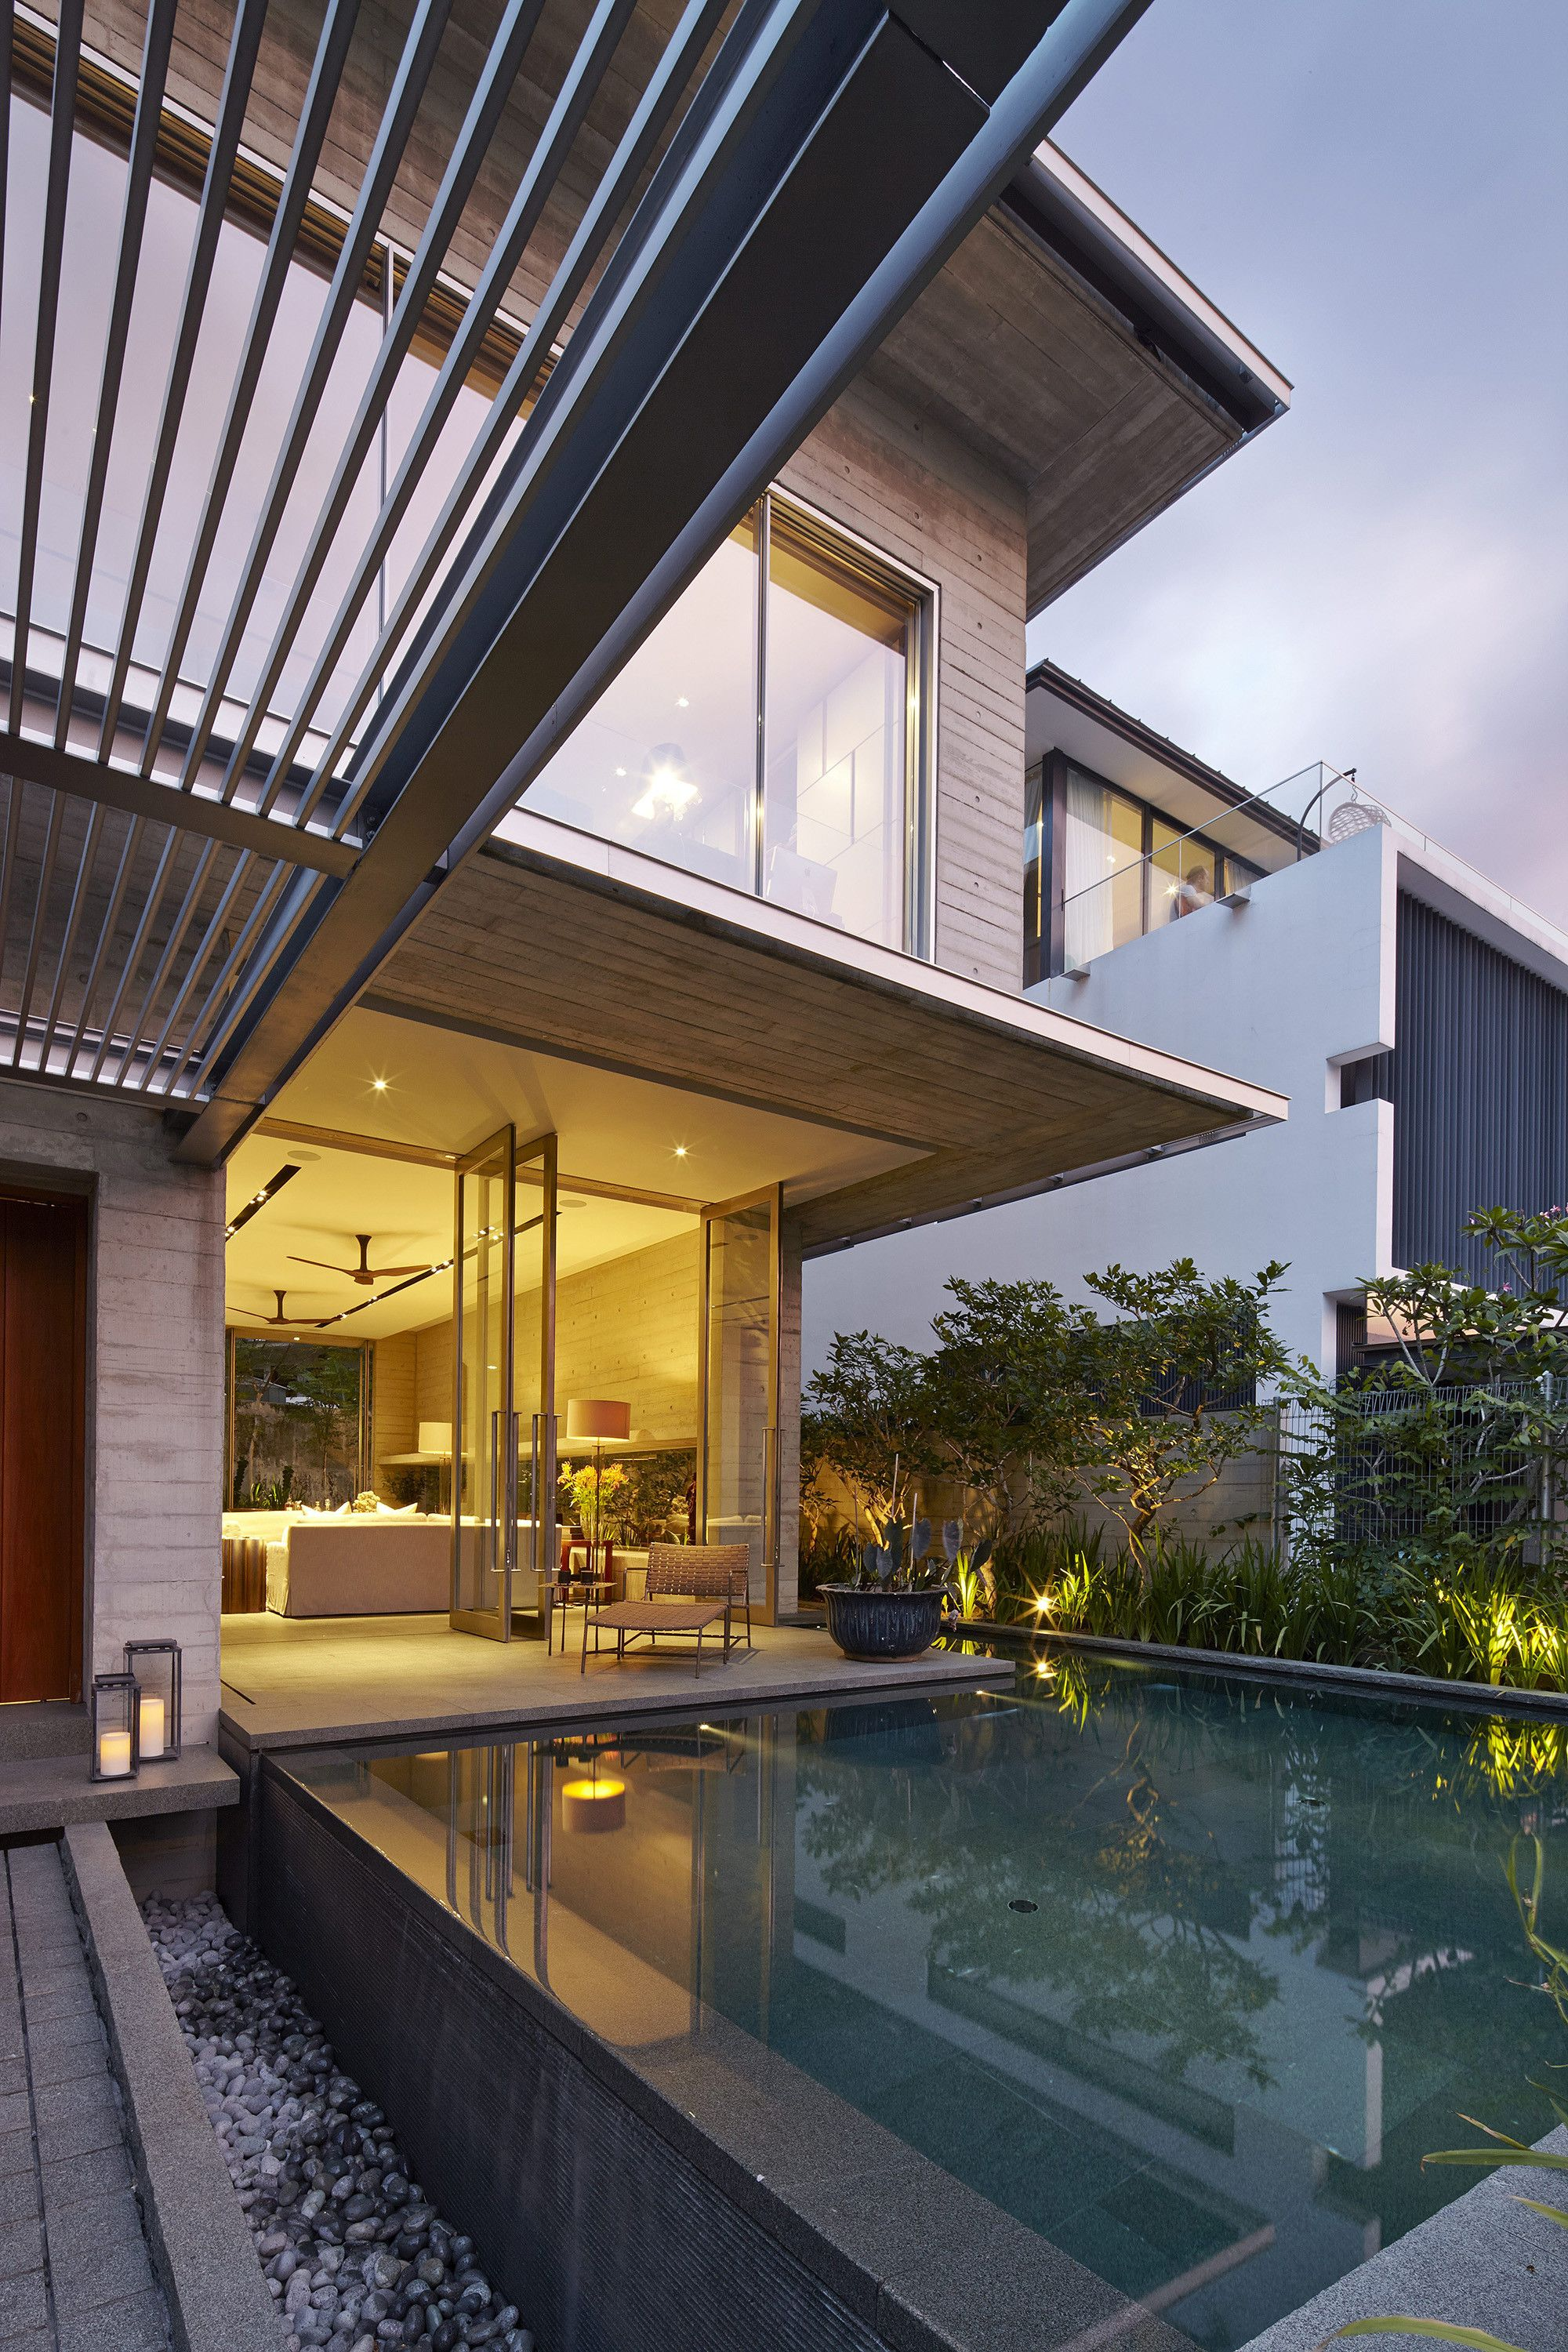 Gallery chiltern house wow architects warner wong design 3